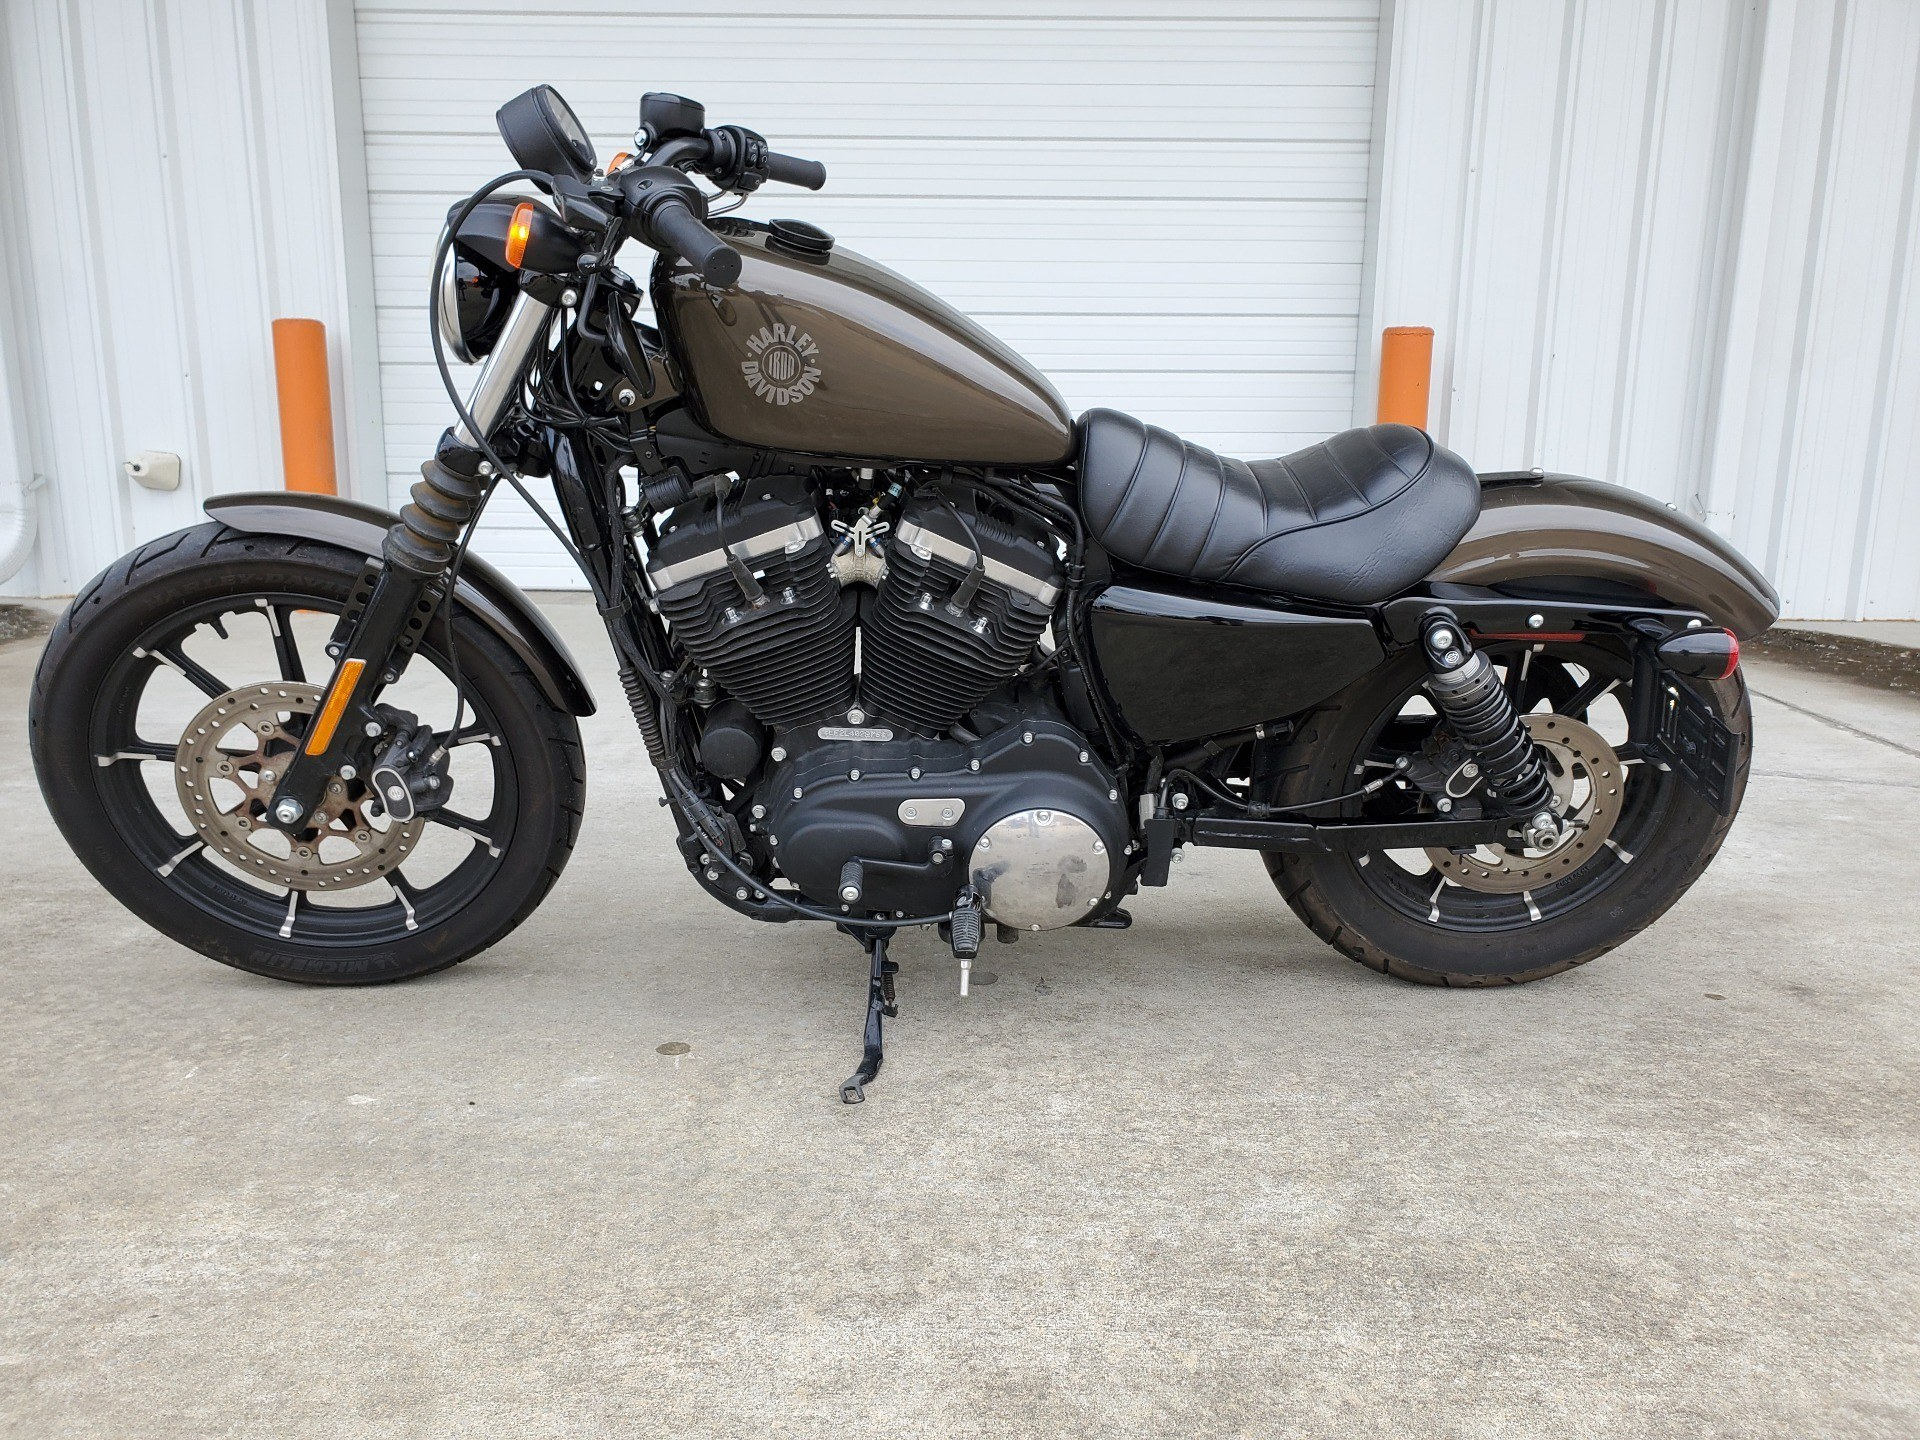 2020 Harley Sportster Iron 883 for sale - Photo 2